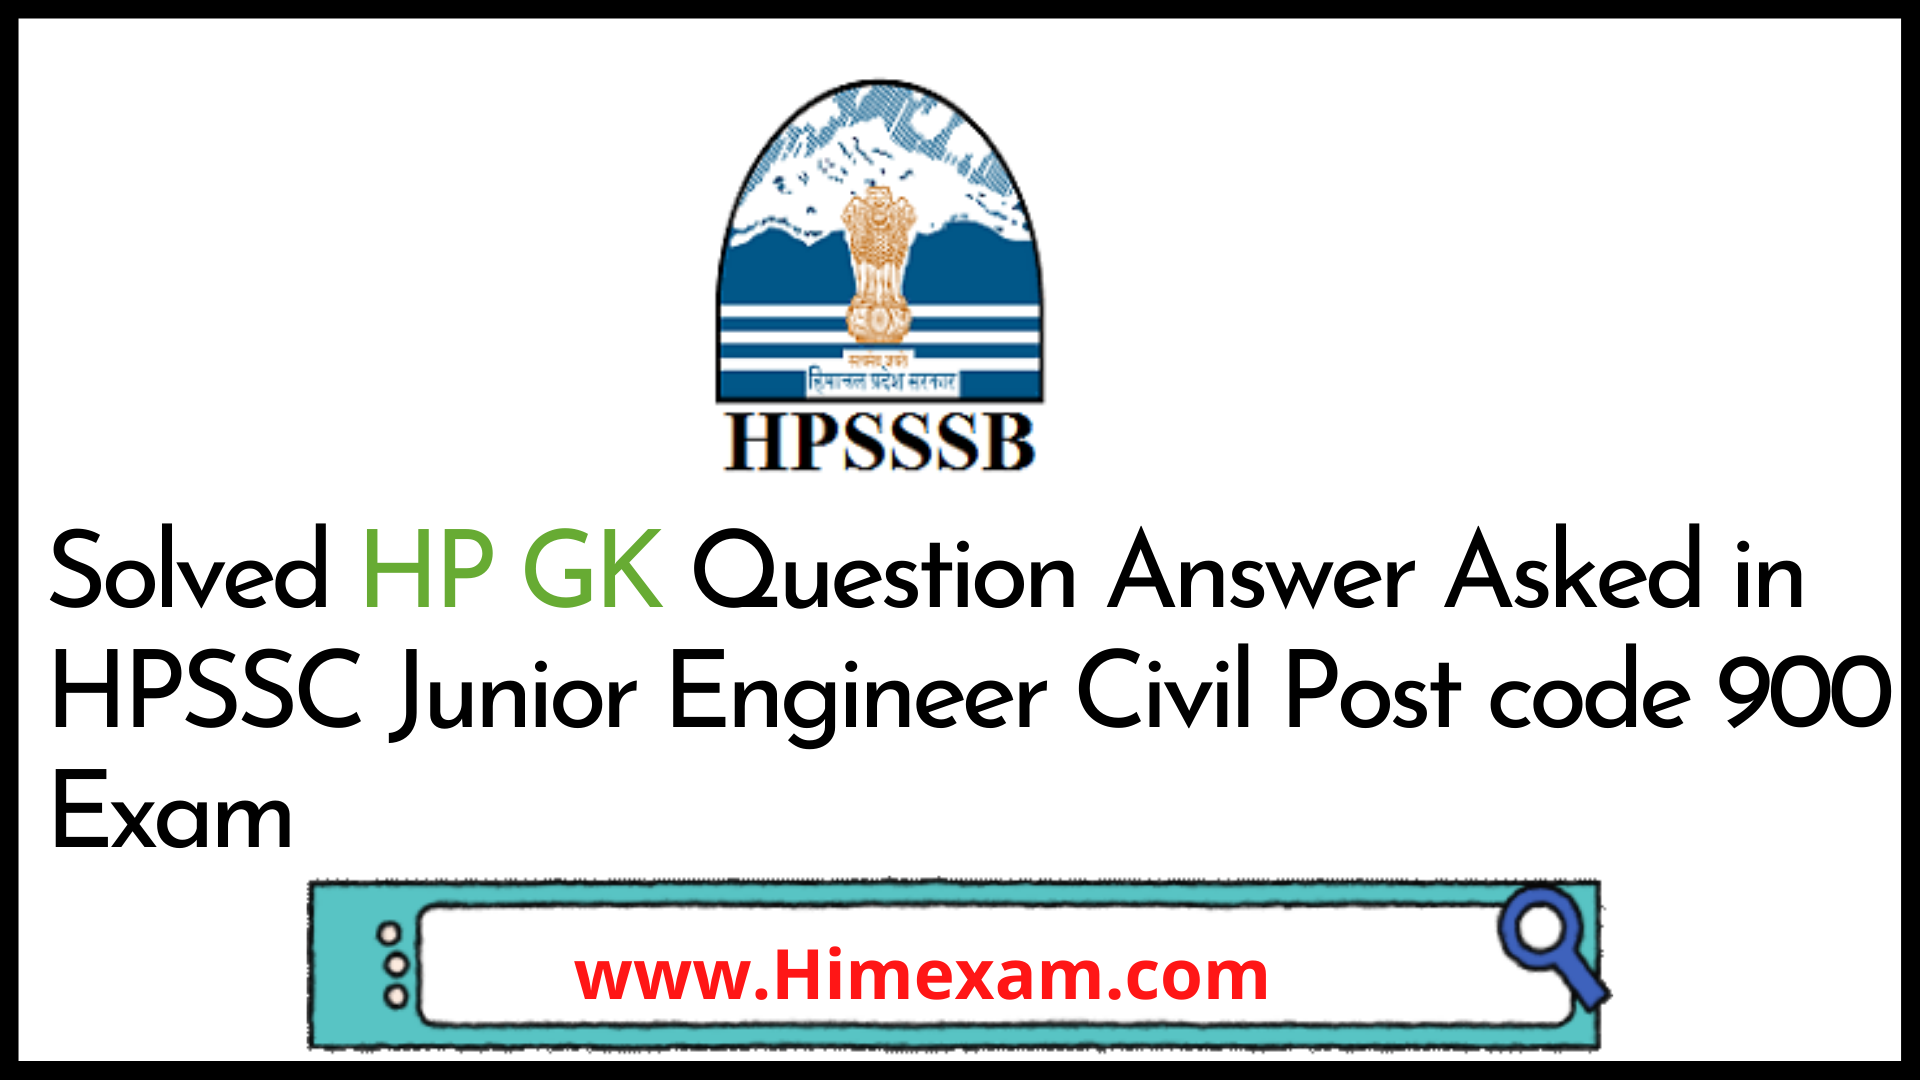 Solved HP GK Question Answer Asked in HPSSC Junior Engineer Civil Post code 900 Exam